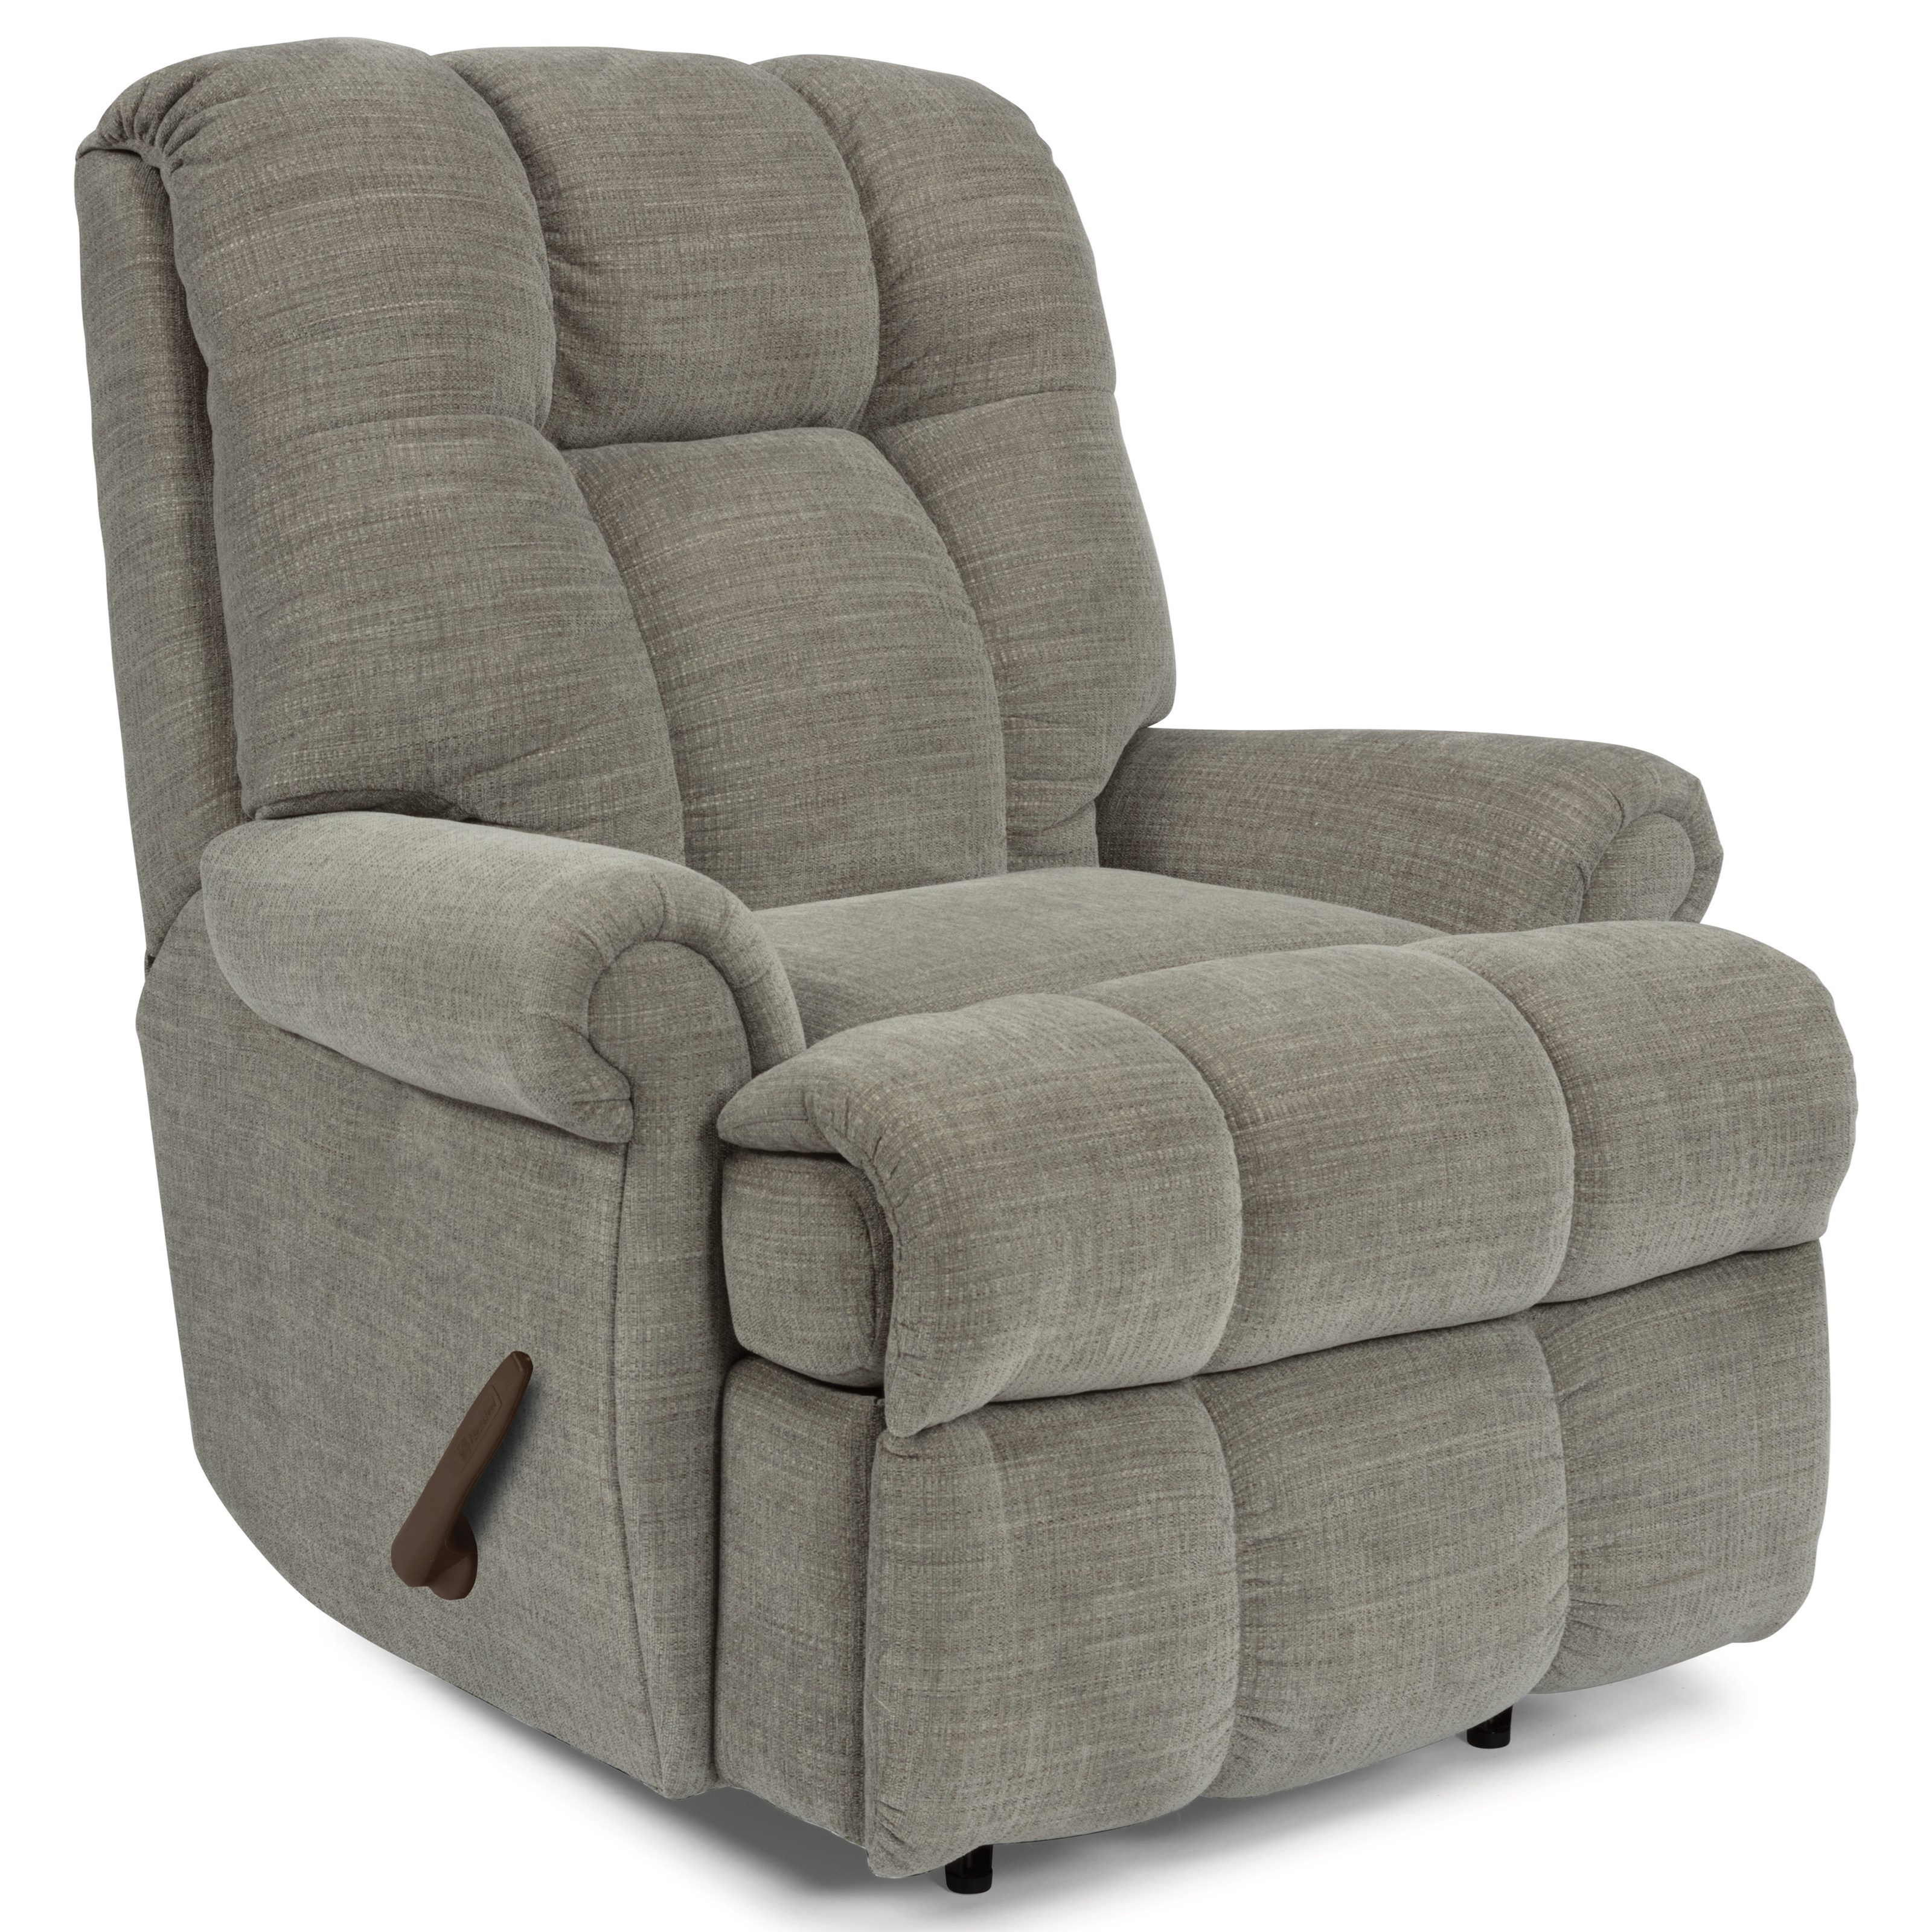 Accents Large Recliner by Flexsteel at Furniture Superstore - Rochester, MN